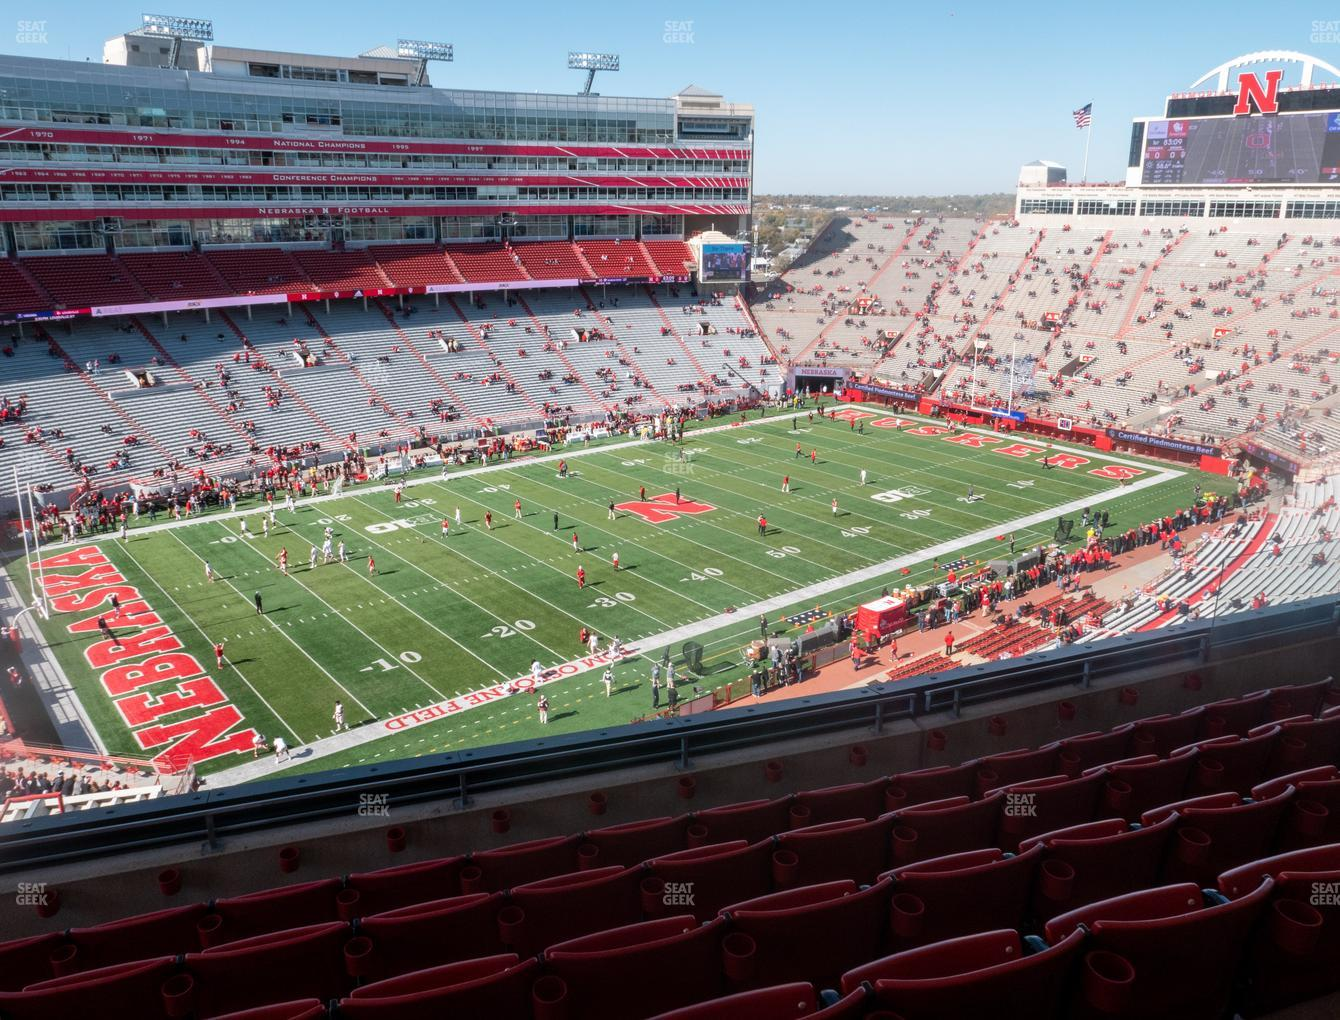 Nebraska Cornhuskers Football at Memorial Stadium Nebraska Section 412 View